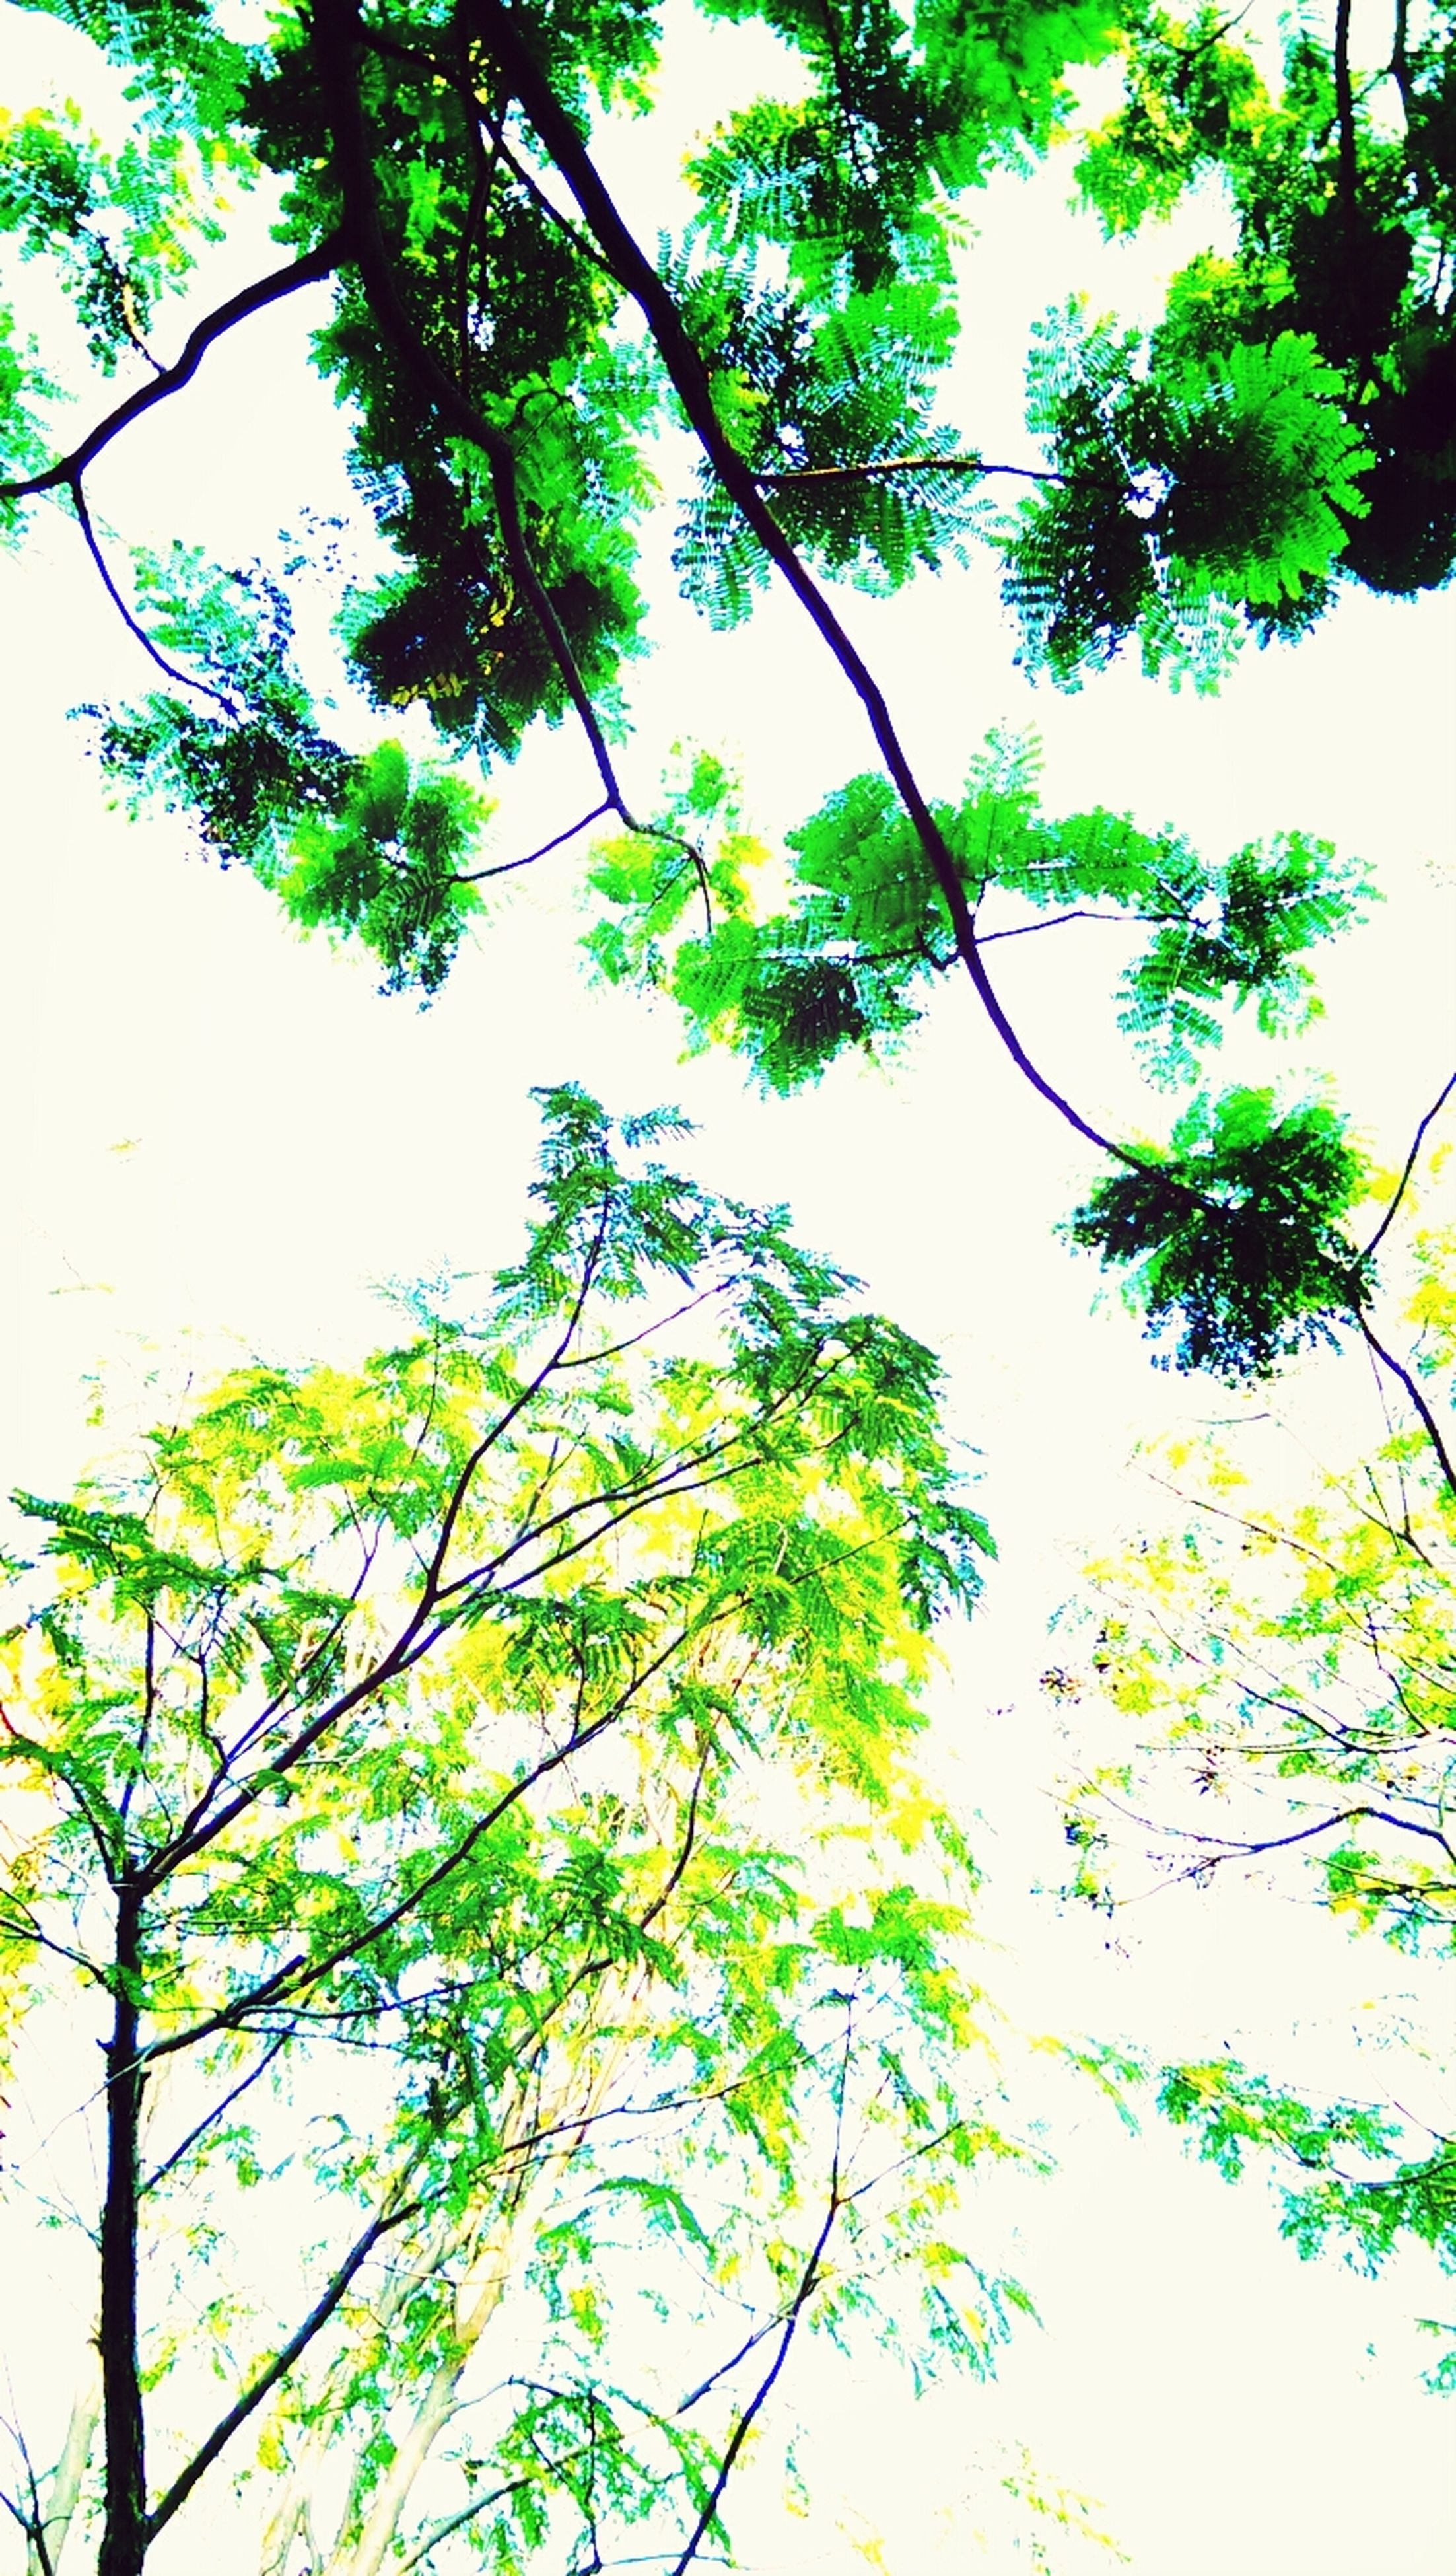 tree, branch, low angle view, growth, nature, green color, tranquility, leaf, beauty in nature, clear sky, day, outdoors, lush foliage, sky, no people, tree trunk, scenics, green, tranquil scene, twig